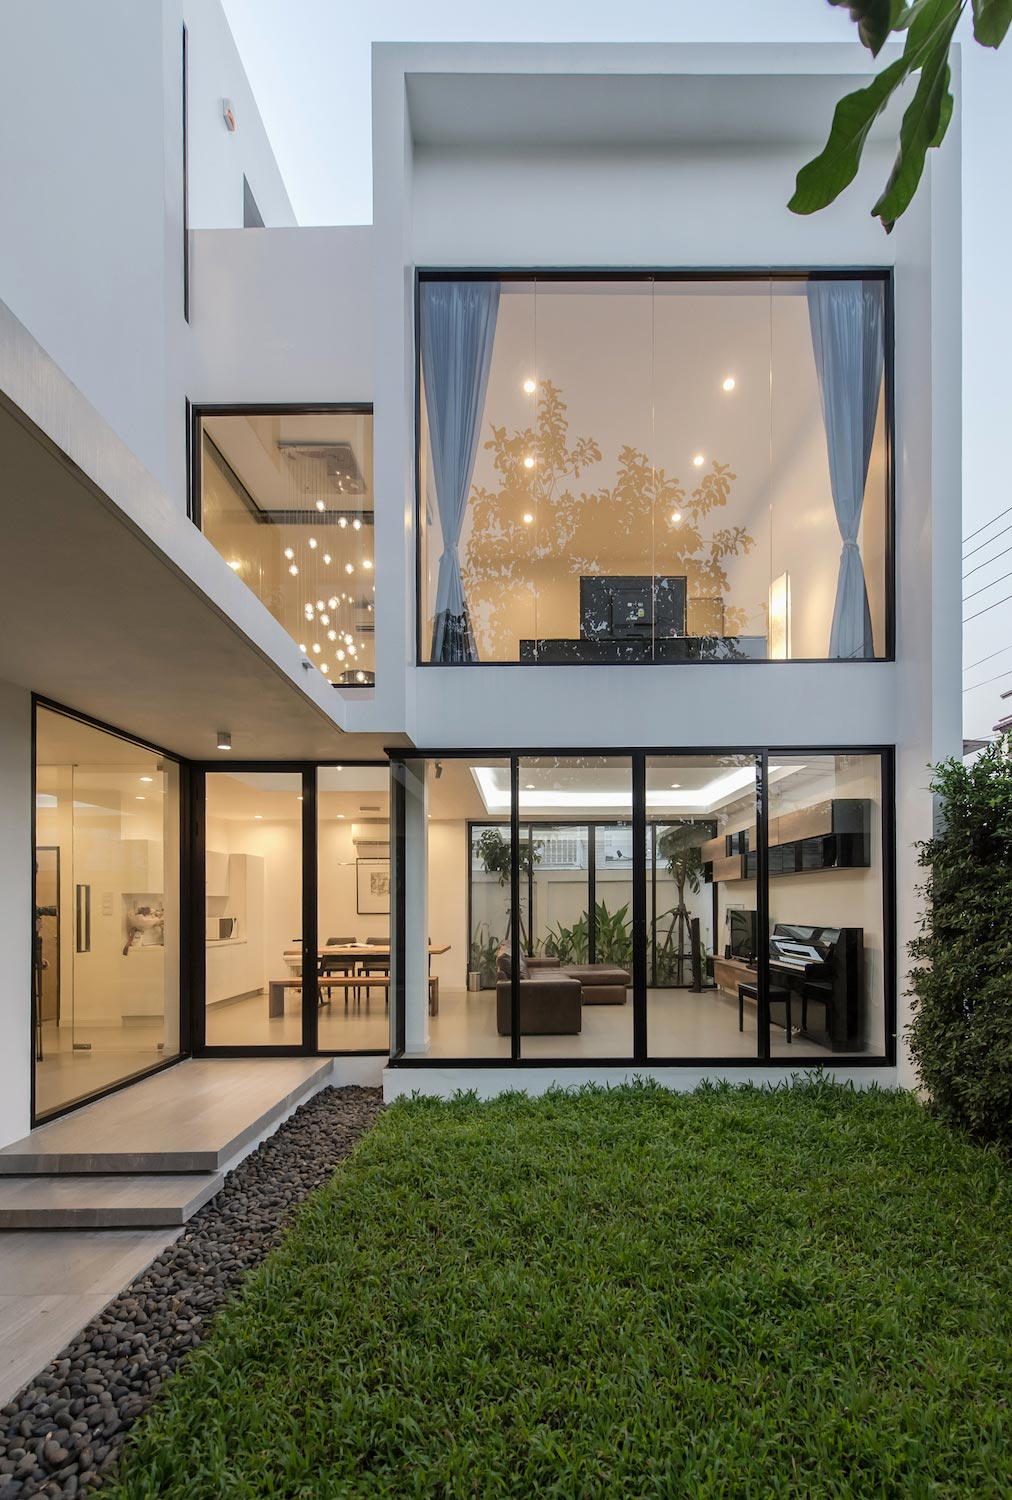 Kradoan House By Thiti Ophatsodsai Serenity With Nature